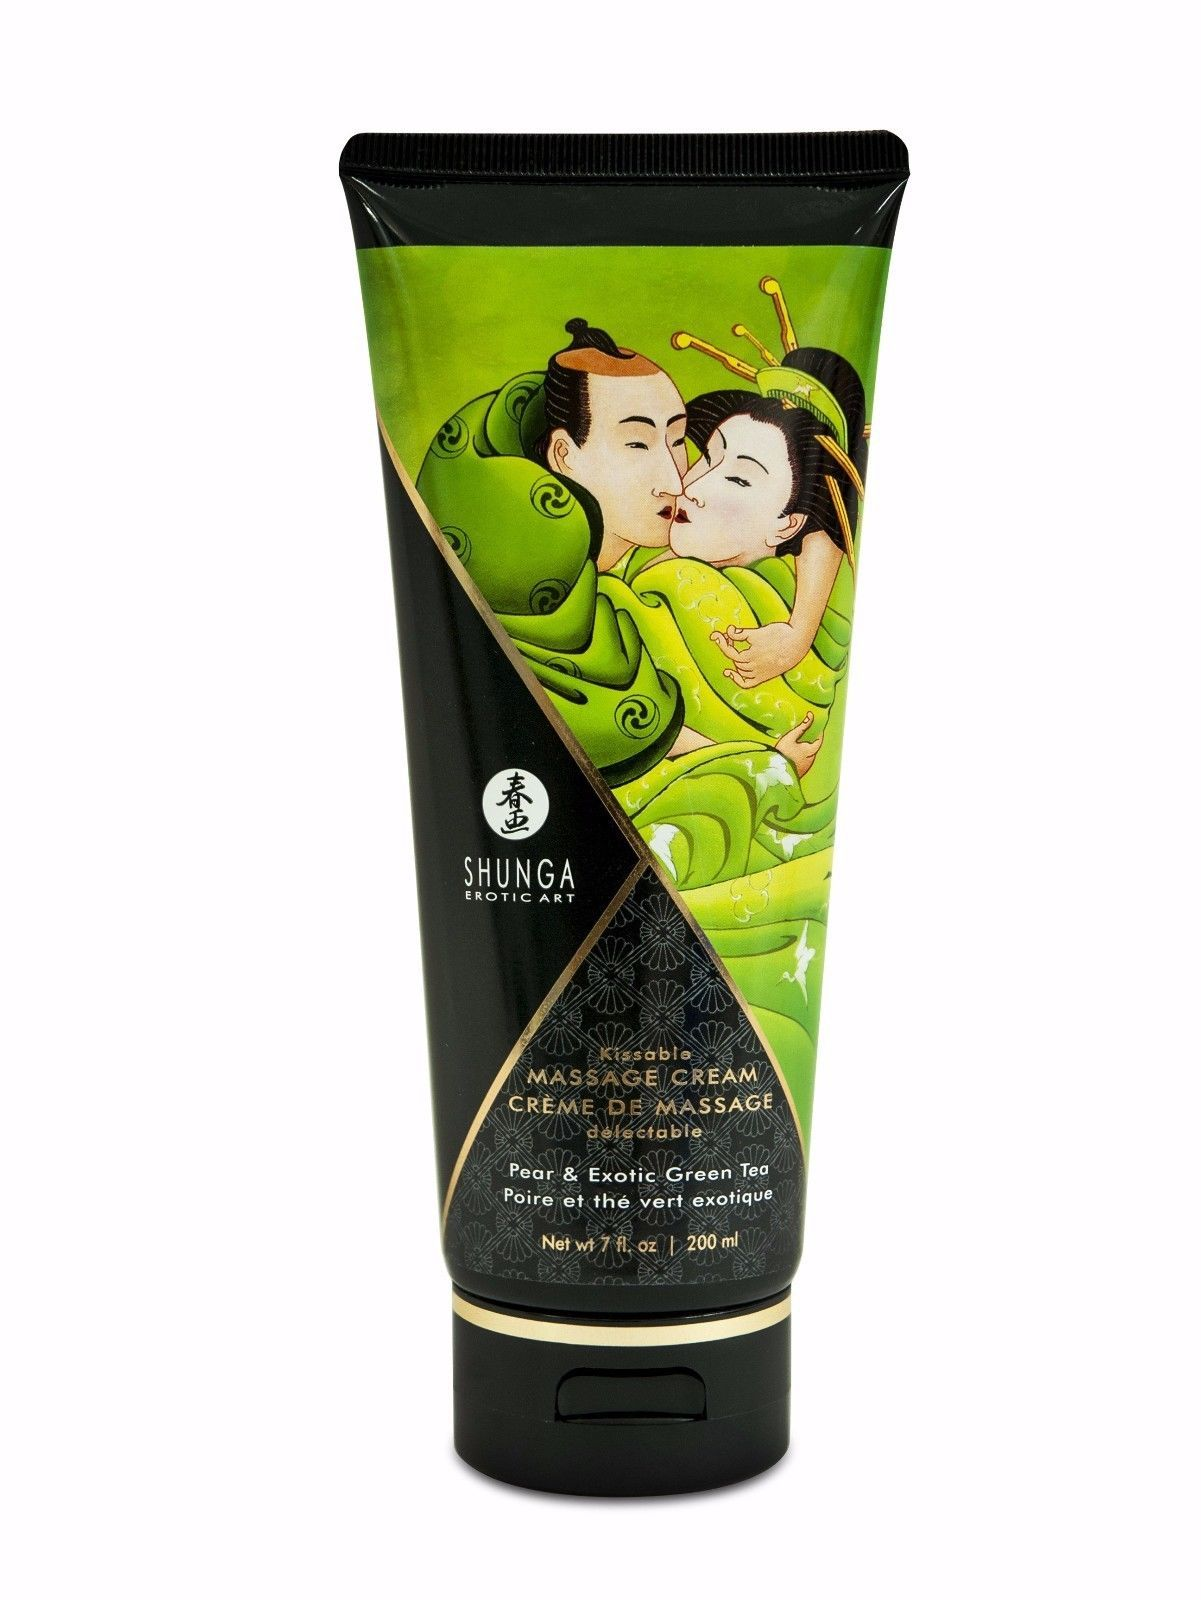 MASSAGE BODY CREAM BY SHUNGA CREAMY SILKY MULTIPLE KISSABLE FLAVORED SCENTS